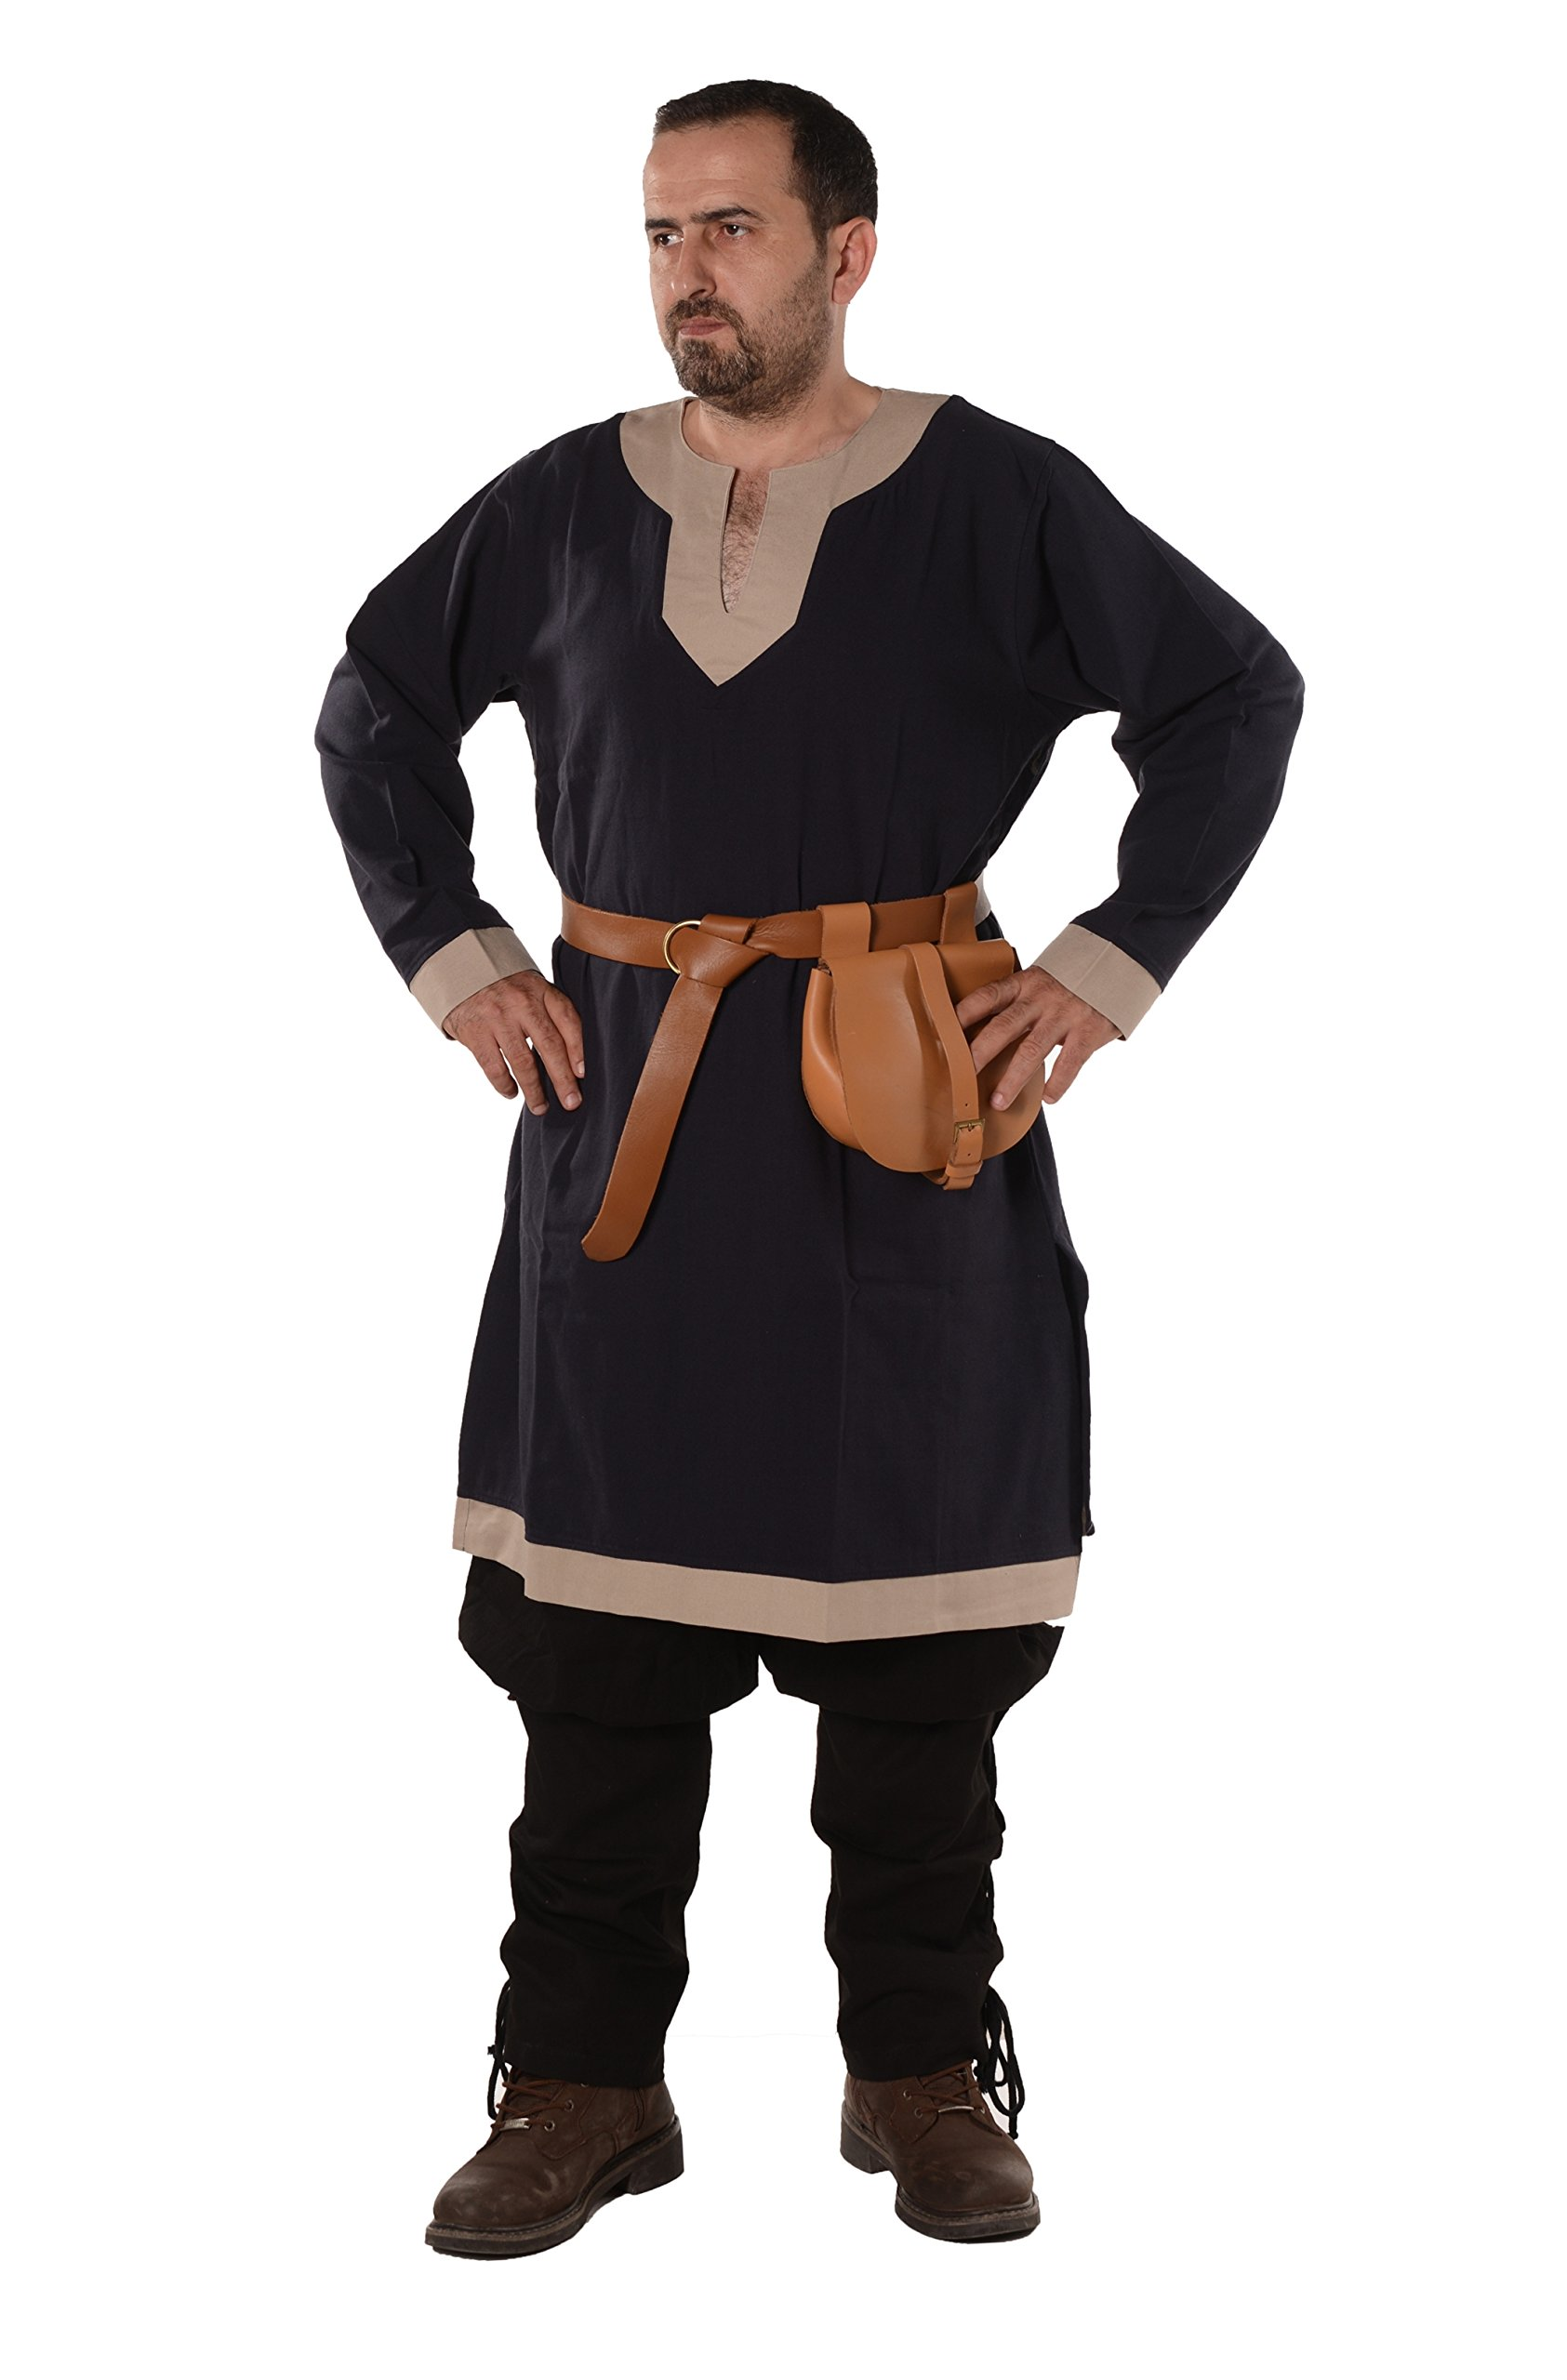 byCalvina - Calvina Costumes Calvina Costumes Arthur Medieval, Viking, LARP and Renaissance Tunic by Formen - Made in Turkey, XL-D.Blu/Bei by byCalvina - Calvina Costumes (Image #1)